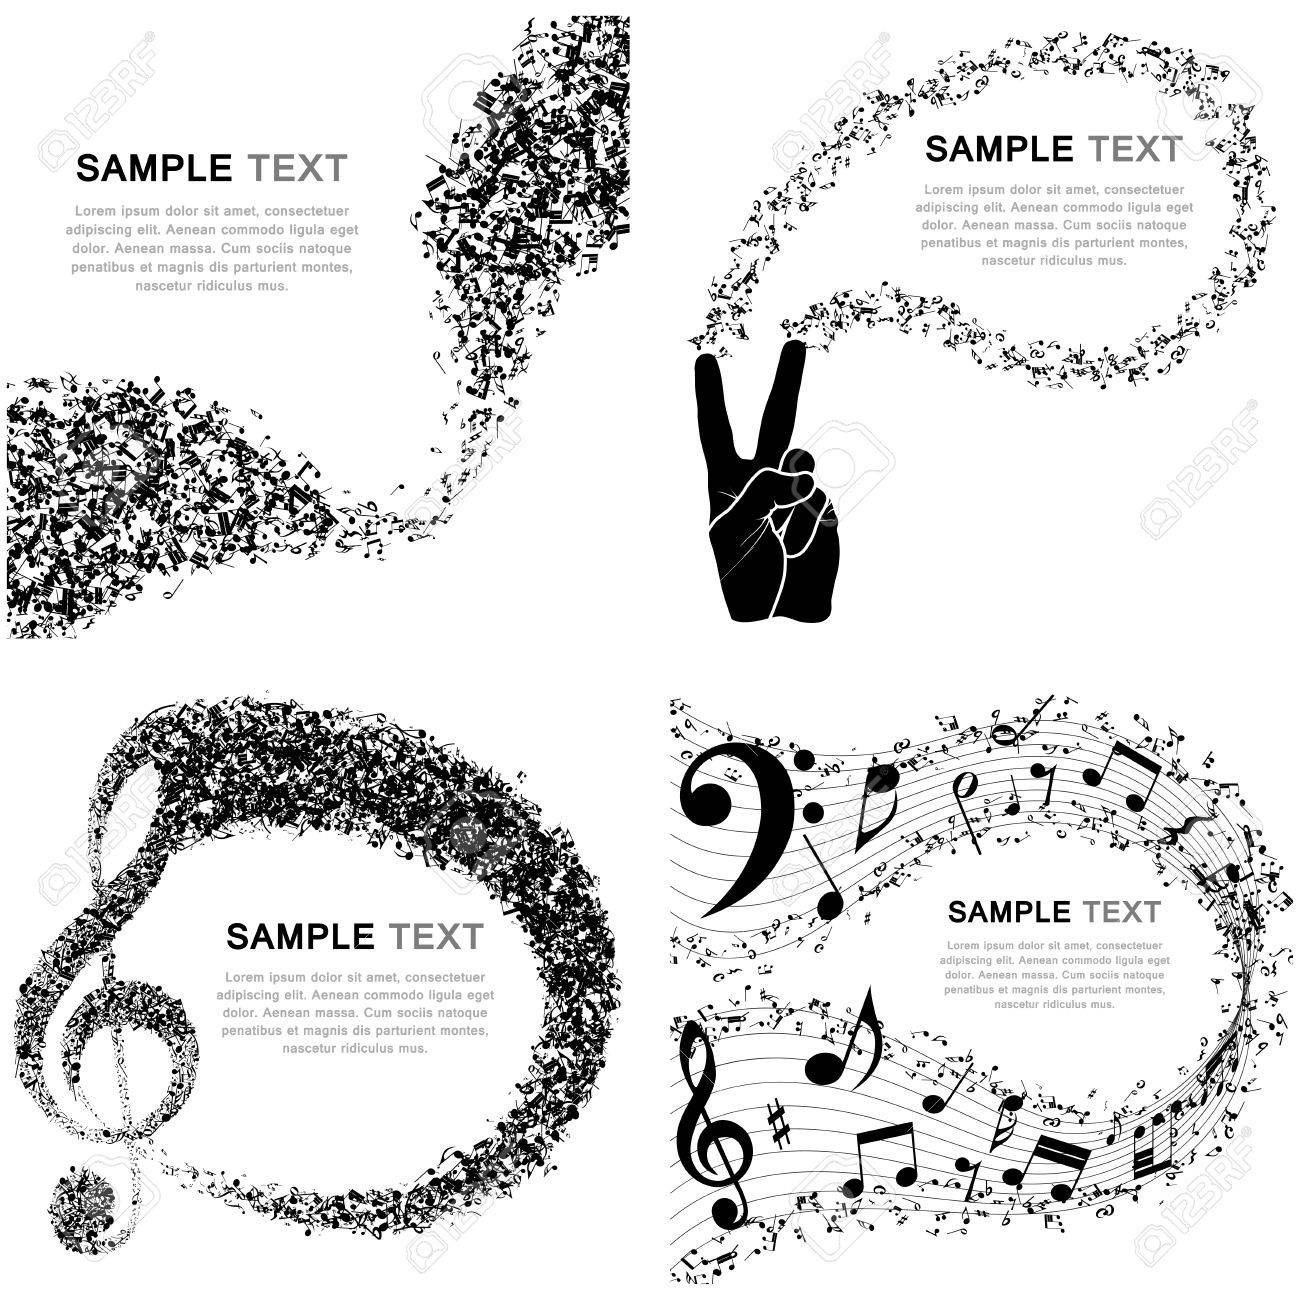 Set of Musical Design Elements From Music Staff With Treble Clef And Notes in Black and White Colors. Elegant Creative Design Isolated on White. Vector Illustration. - 44583899